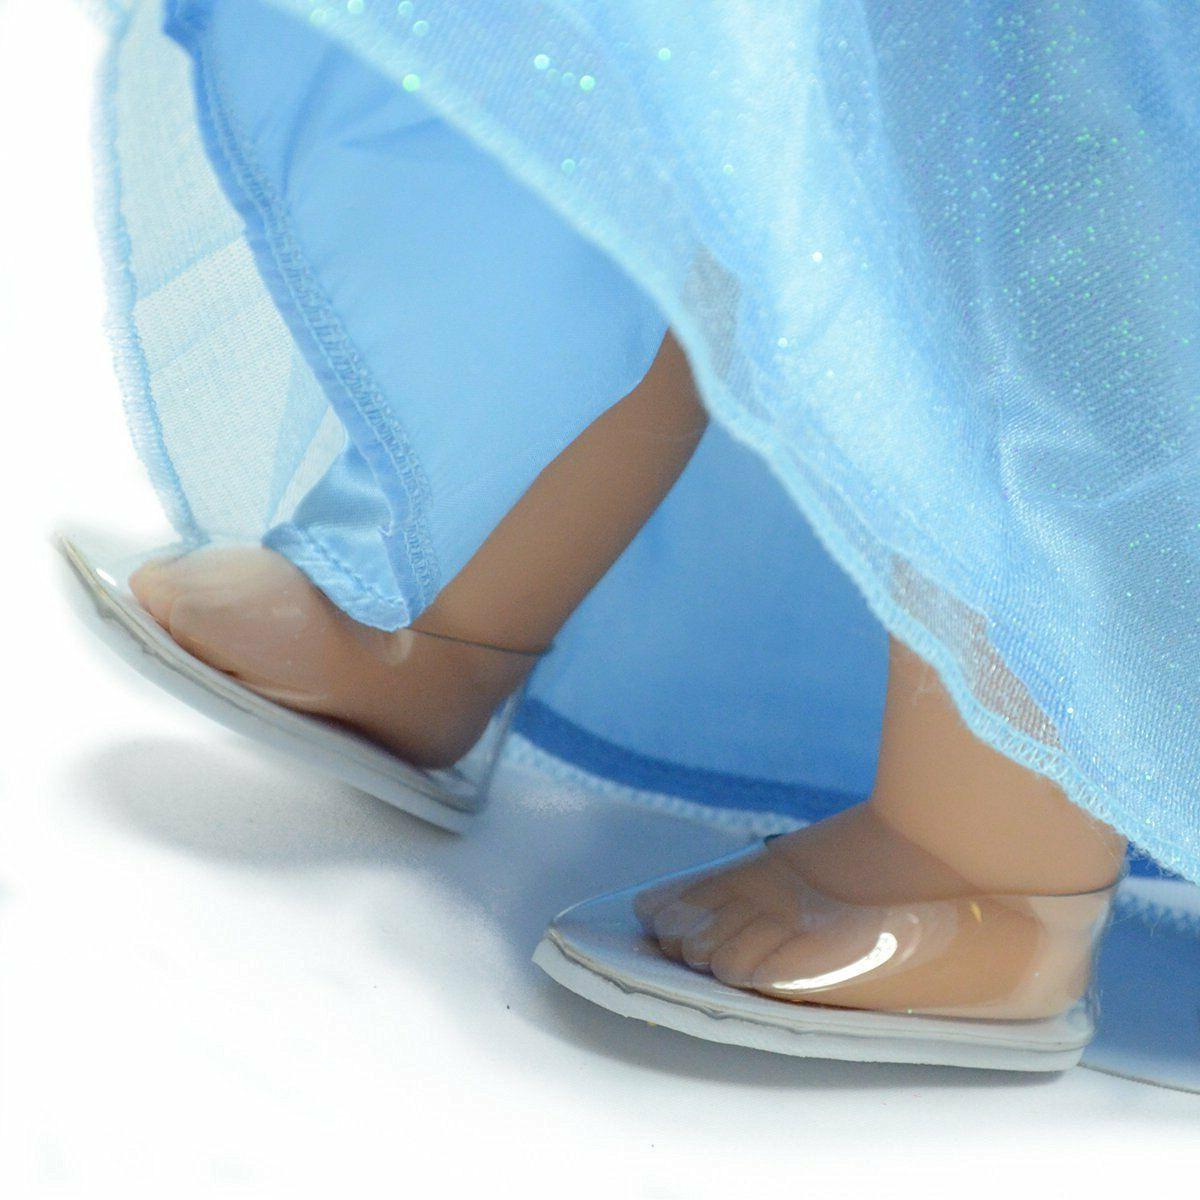 cinderella inspired glass shoes for 18 inch